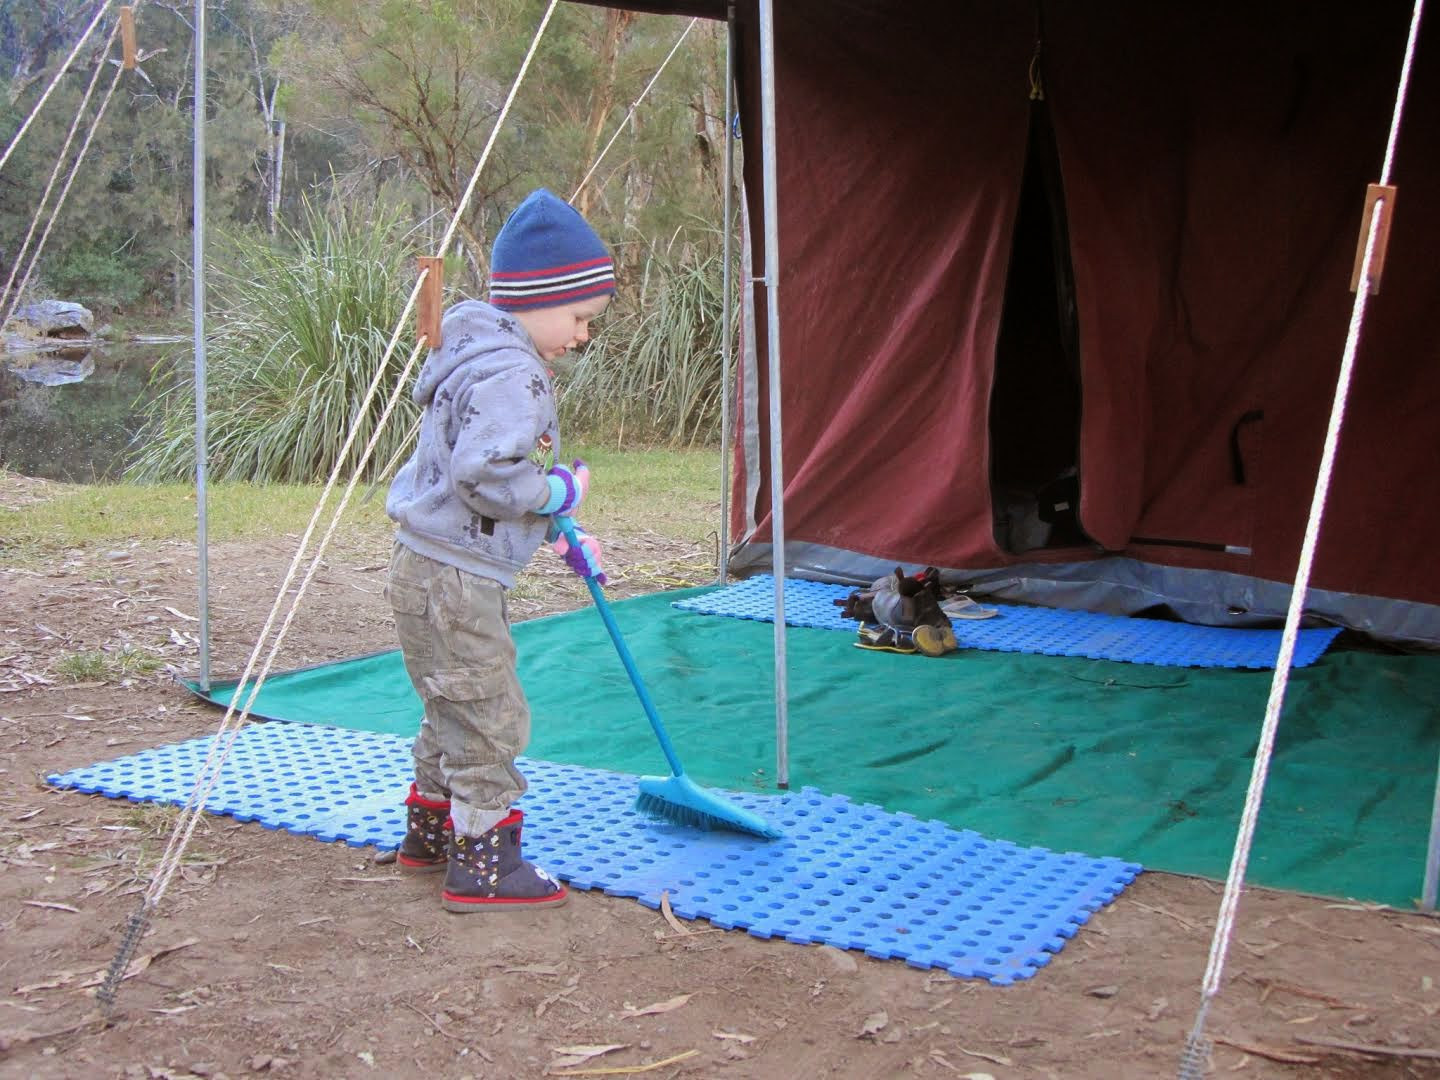 children and camping independence and learning